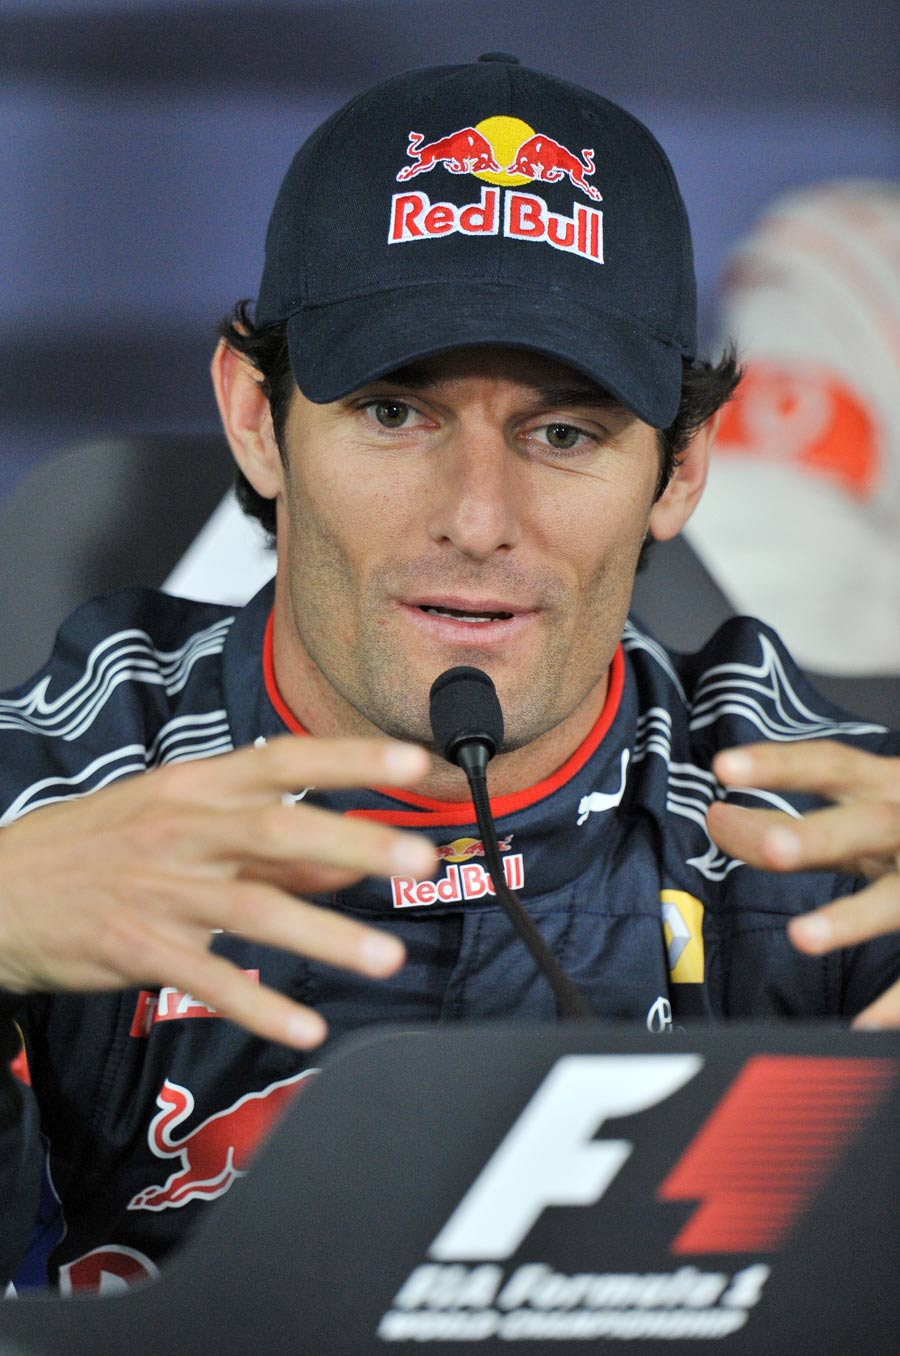 An animated Mark Webber during Thursday's press conference